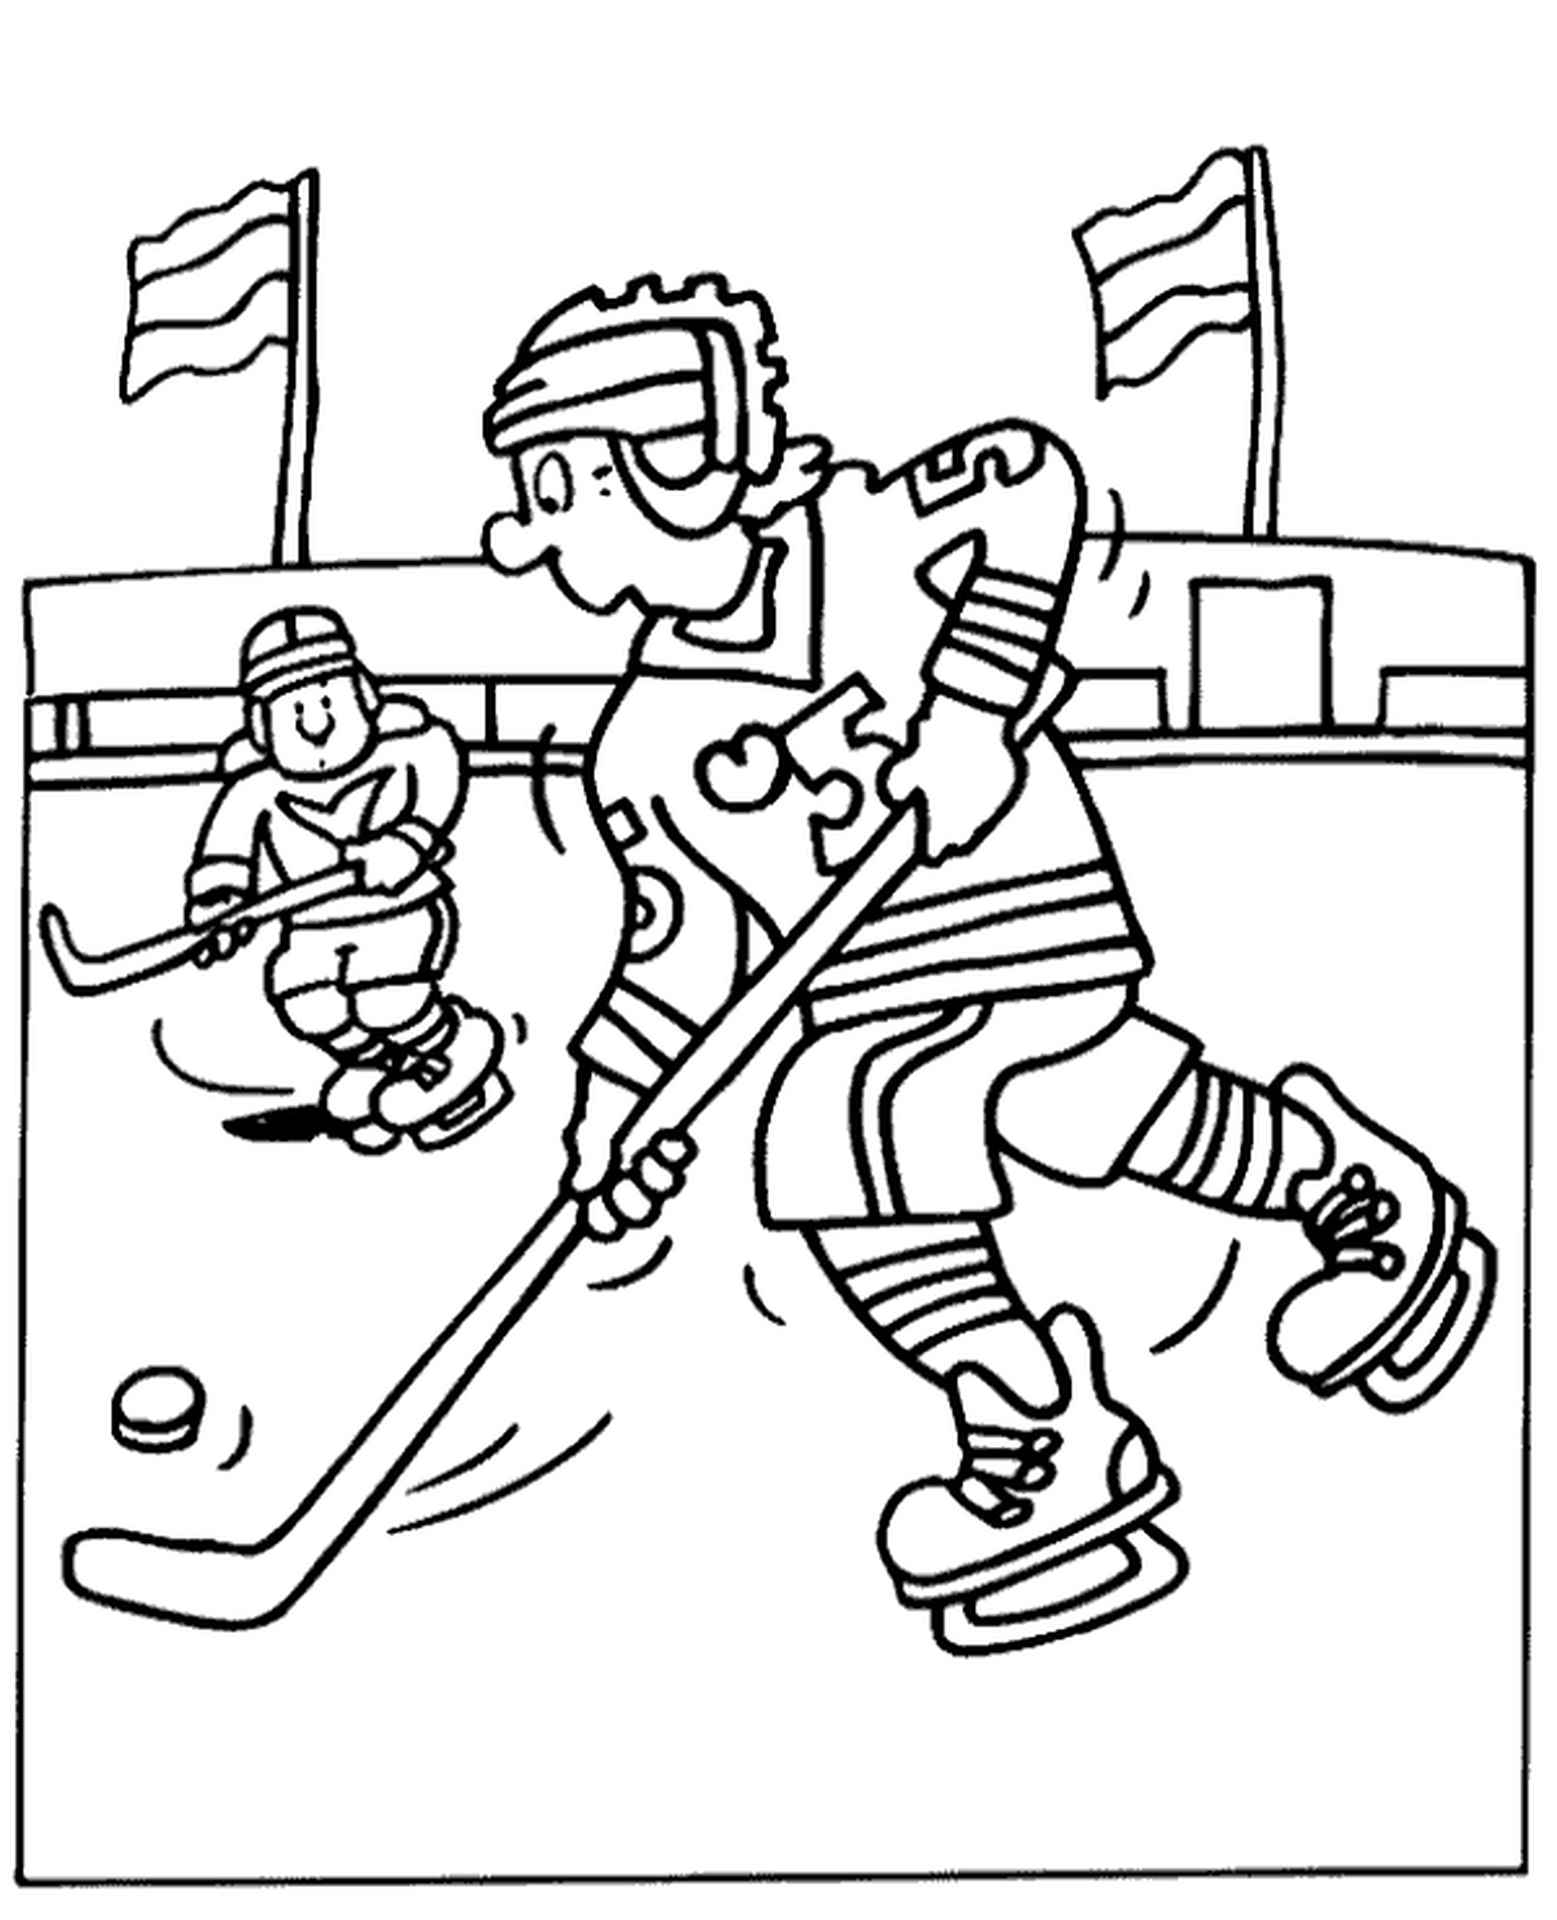 Hockey Players Coloring Page For Children